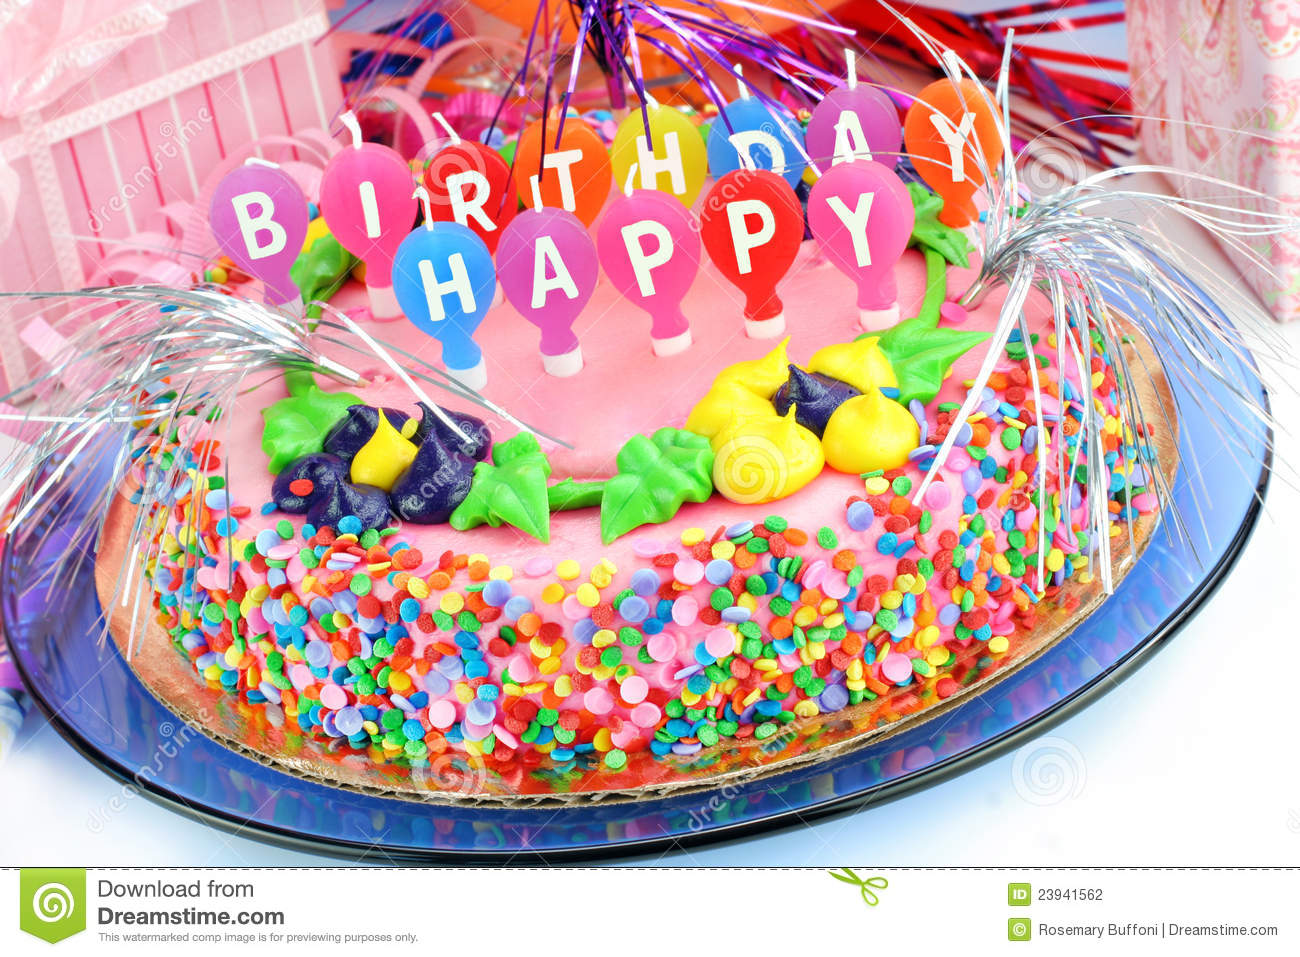 Beautiful Birthday Cakes Images Hd